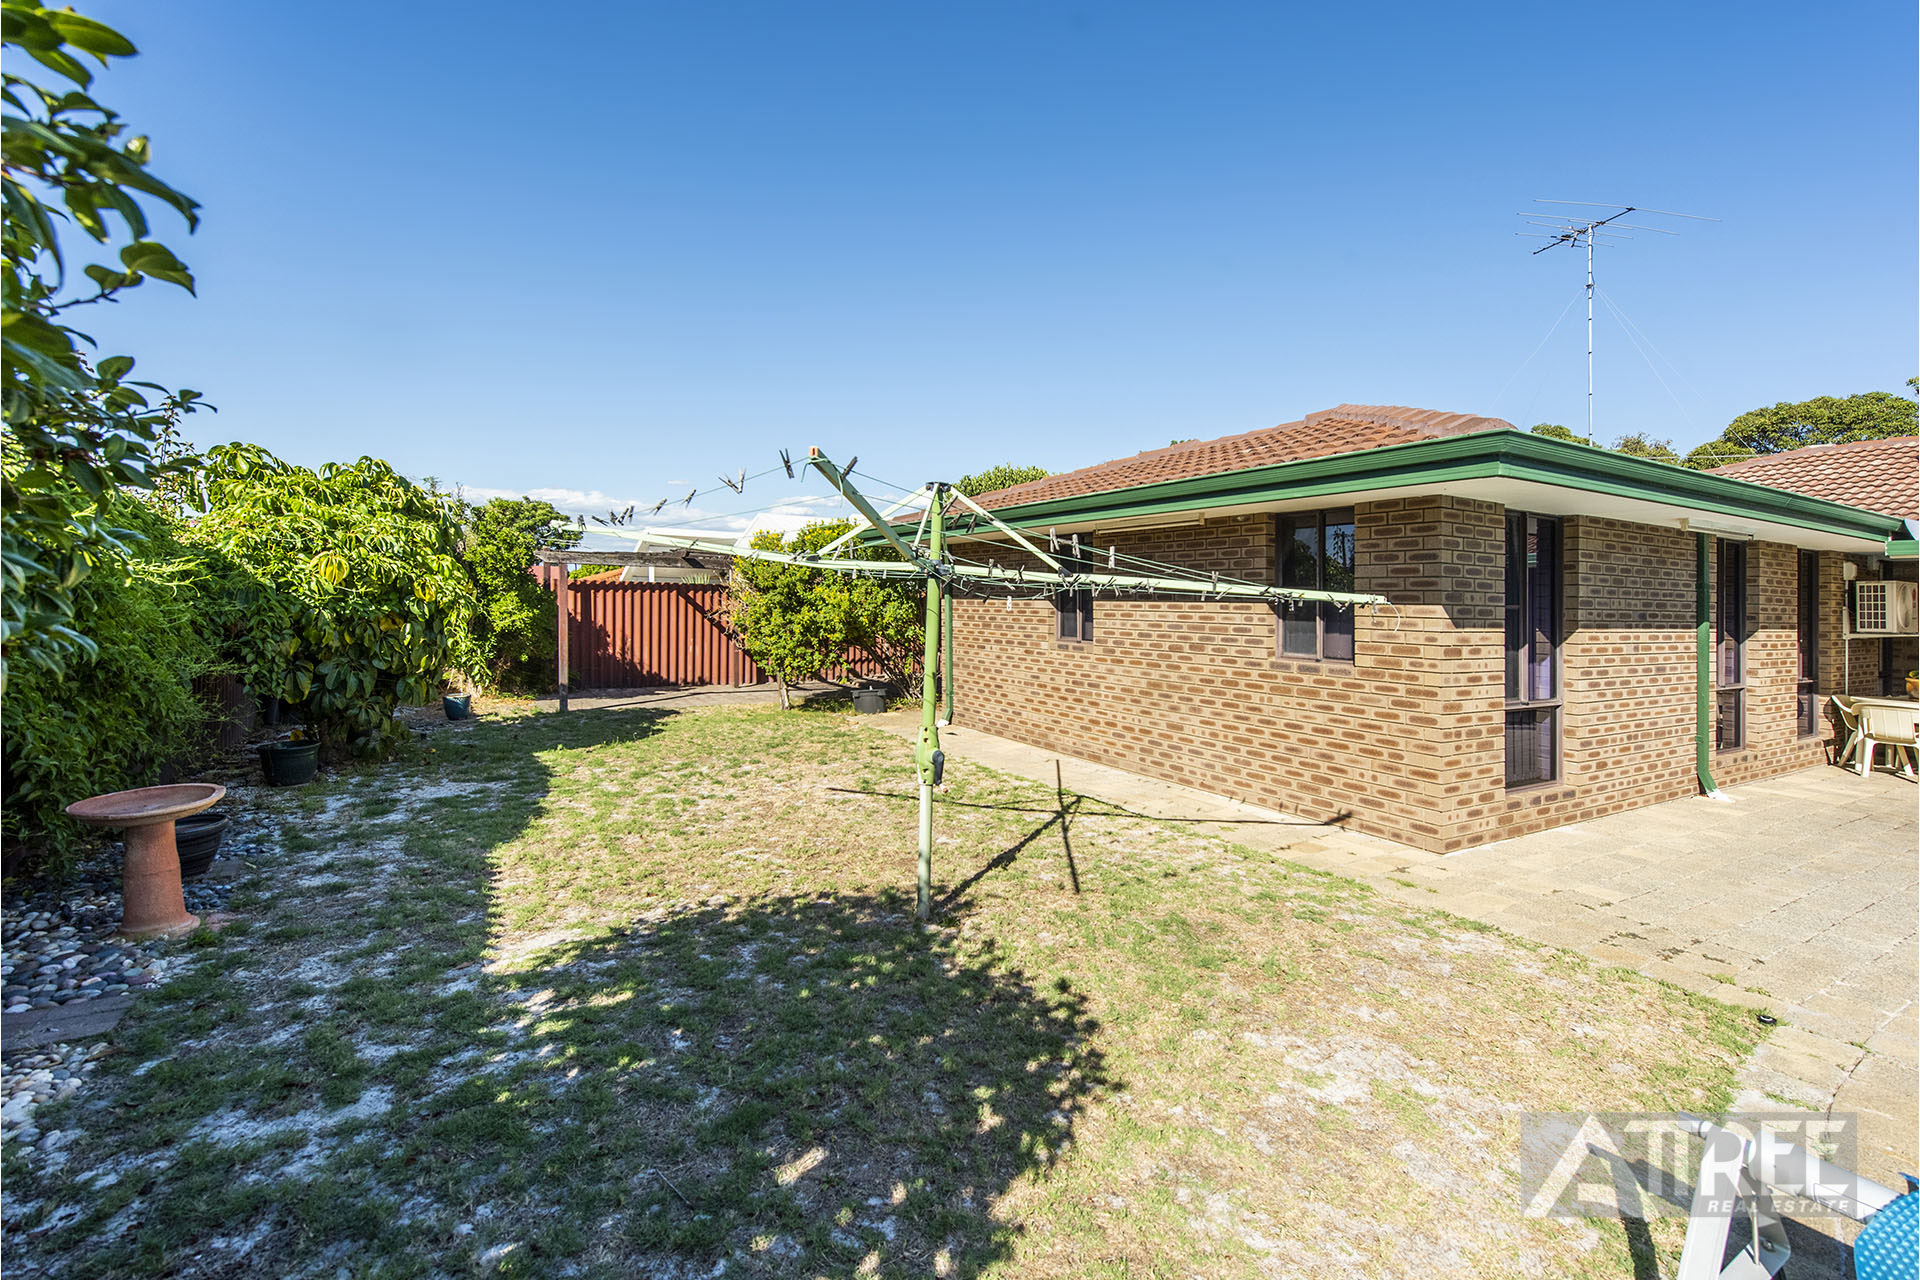 Property for sale in THORNLIE, 7 Daxter Street : Attree Real Estate